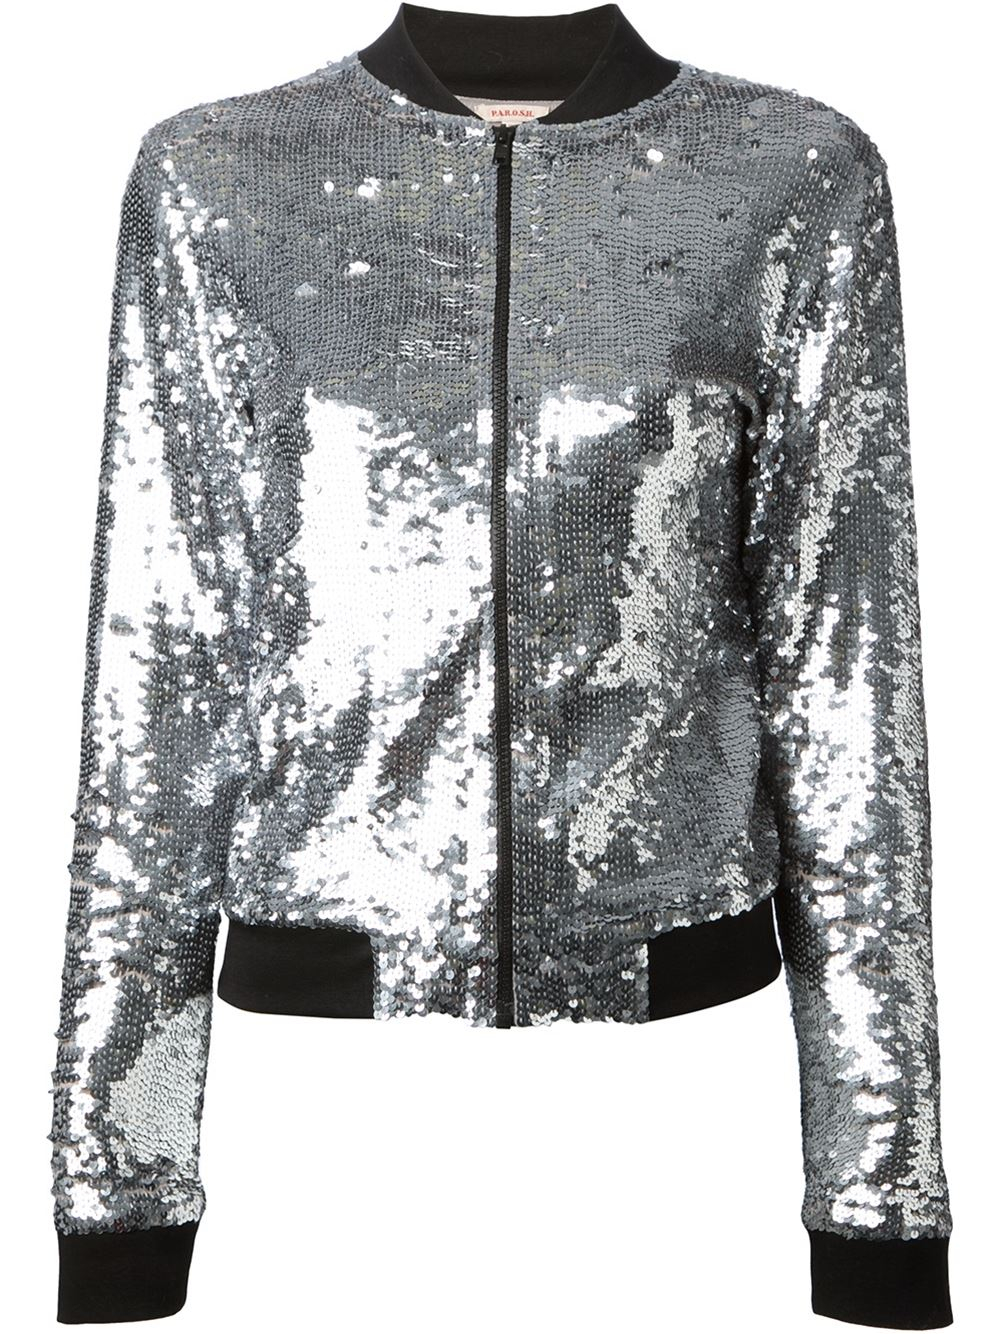 P.a.r.o.s.h. Sequin Jacket in Silver (metallic) | Lyst